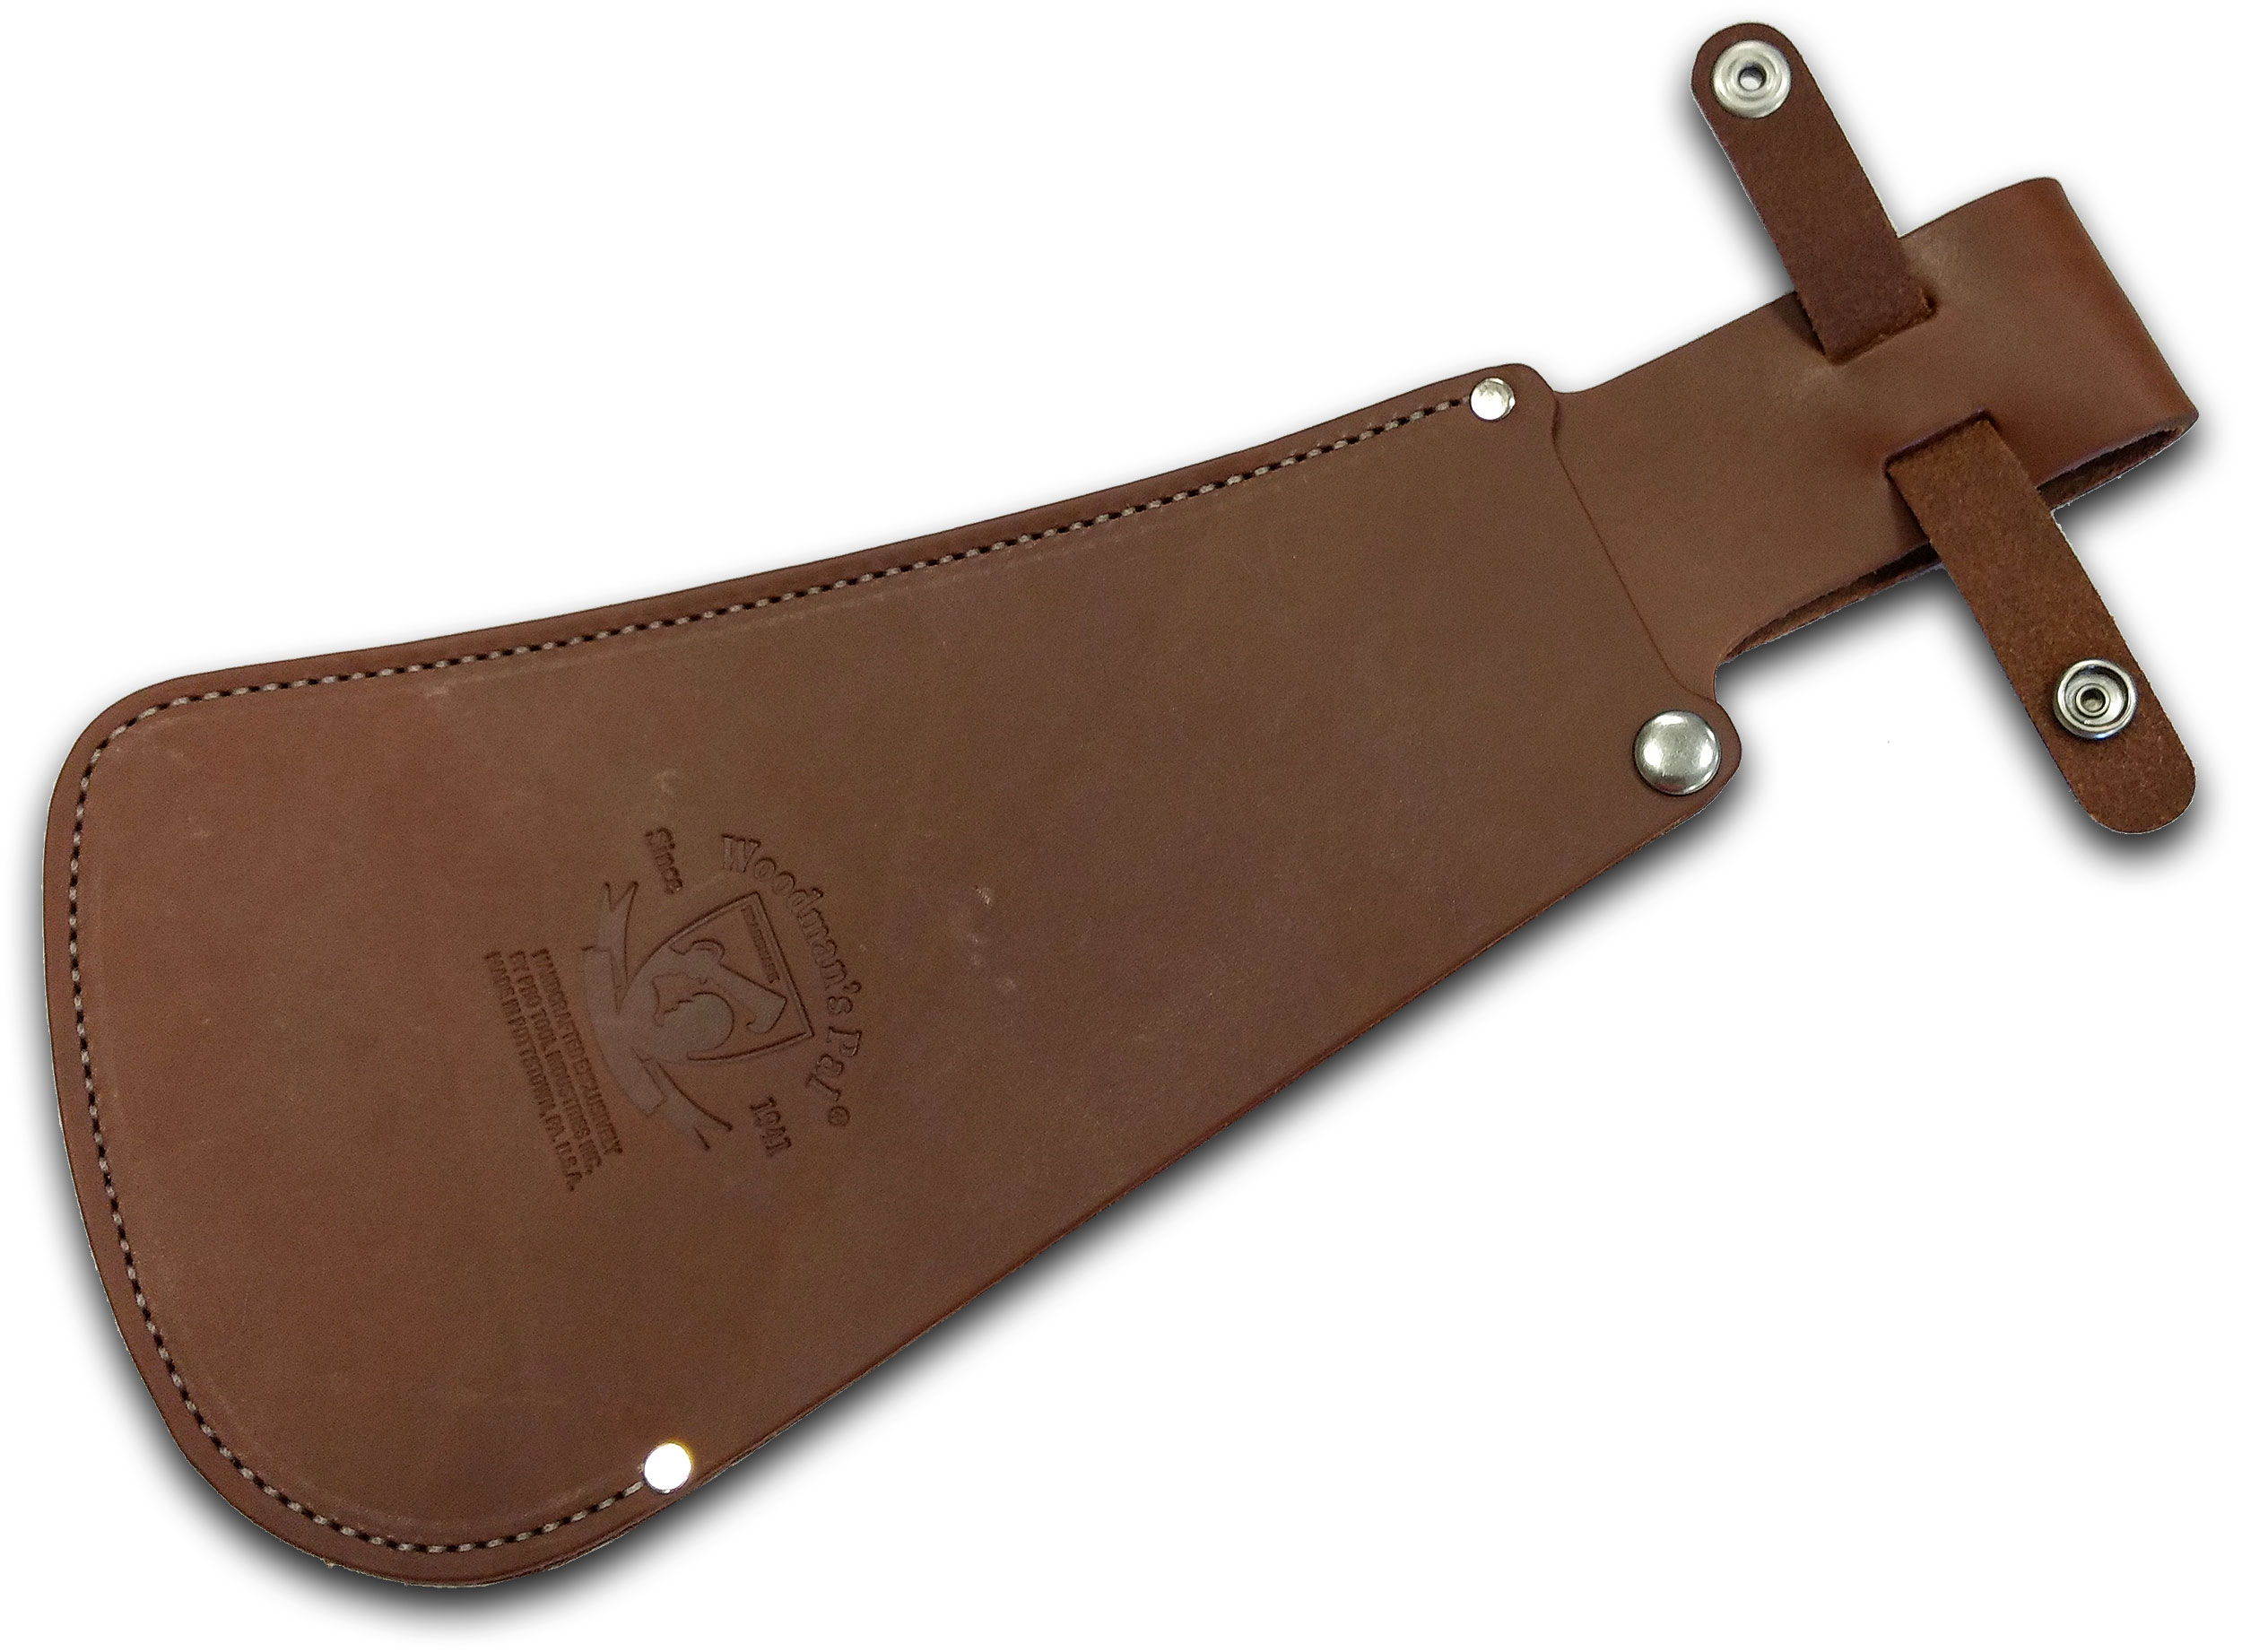 Woodman's Pal 510-T Treated Leather Sheath Fits Models 481, 284 and 145